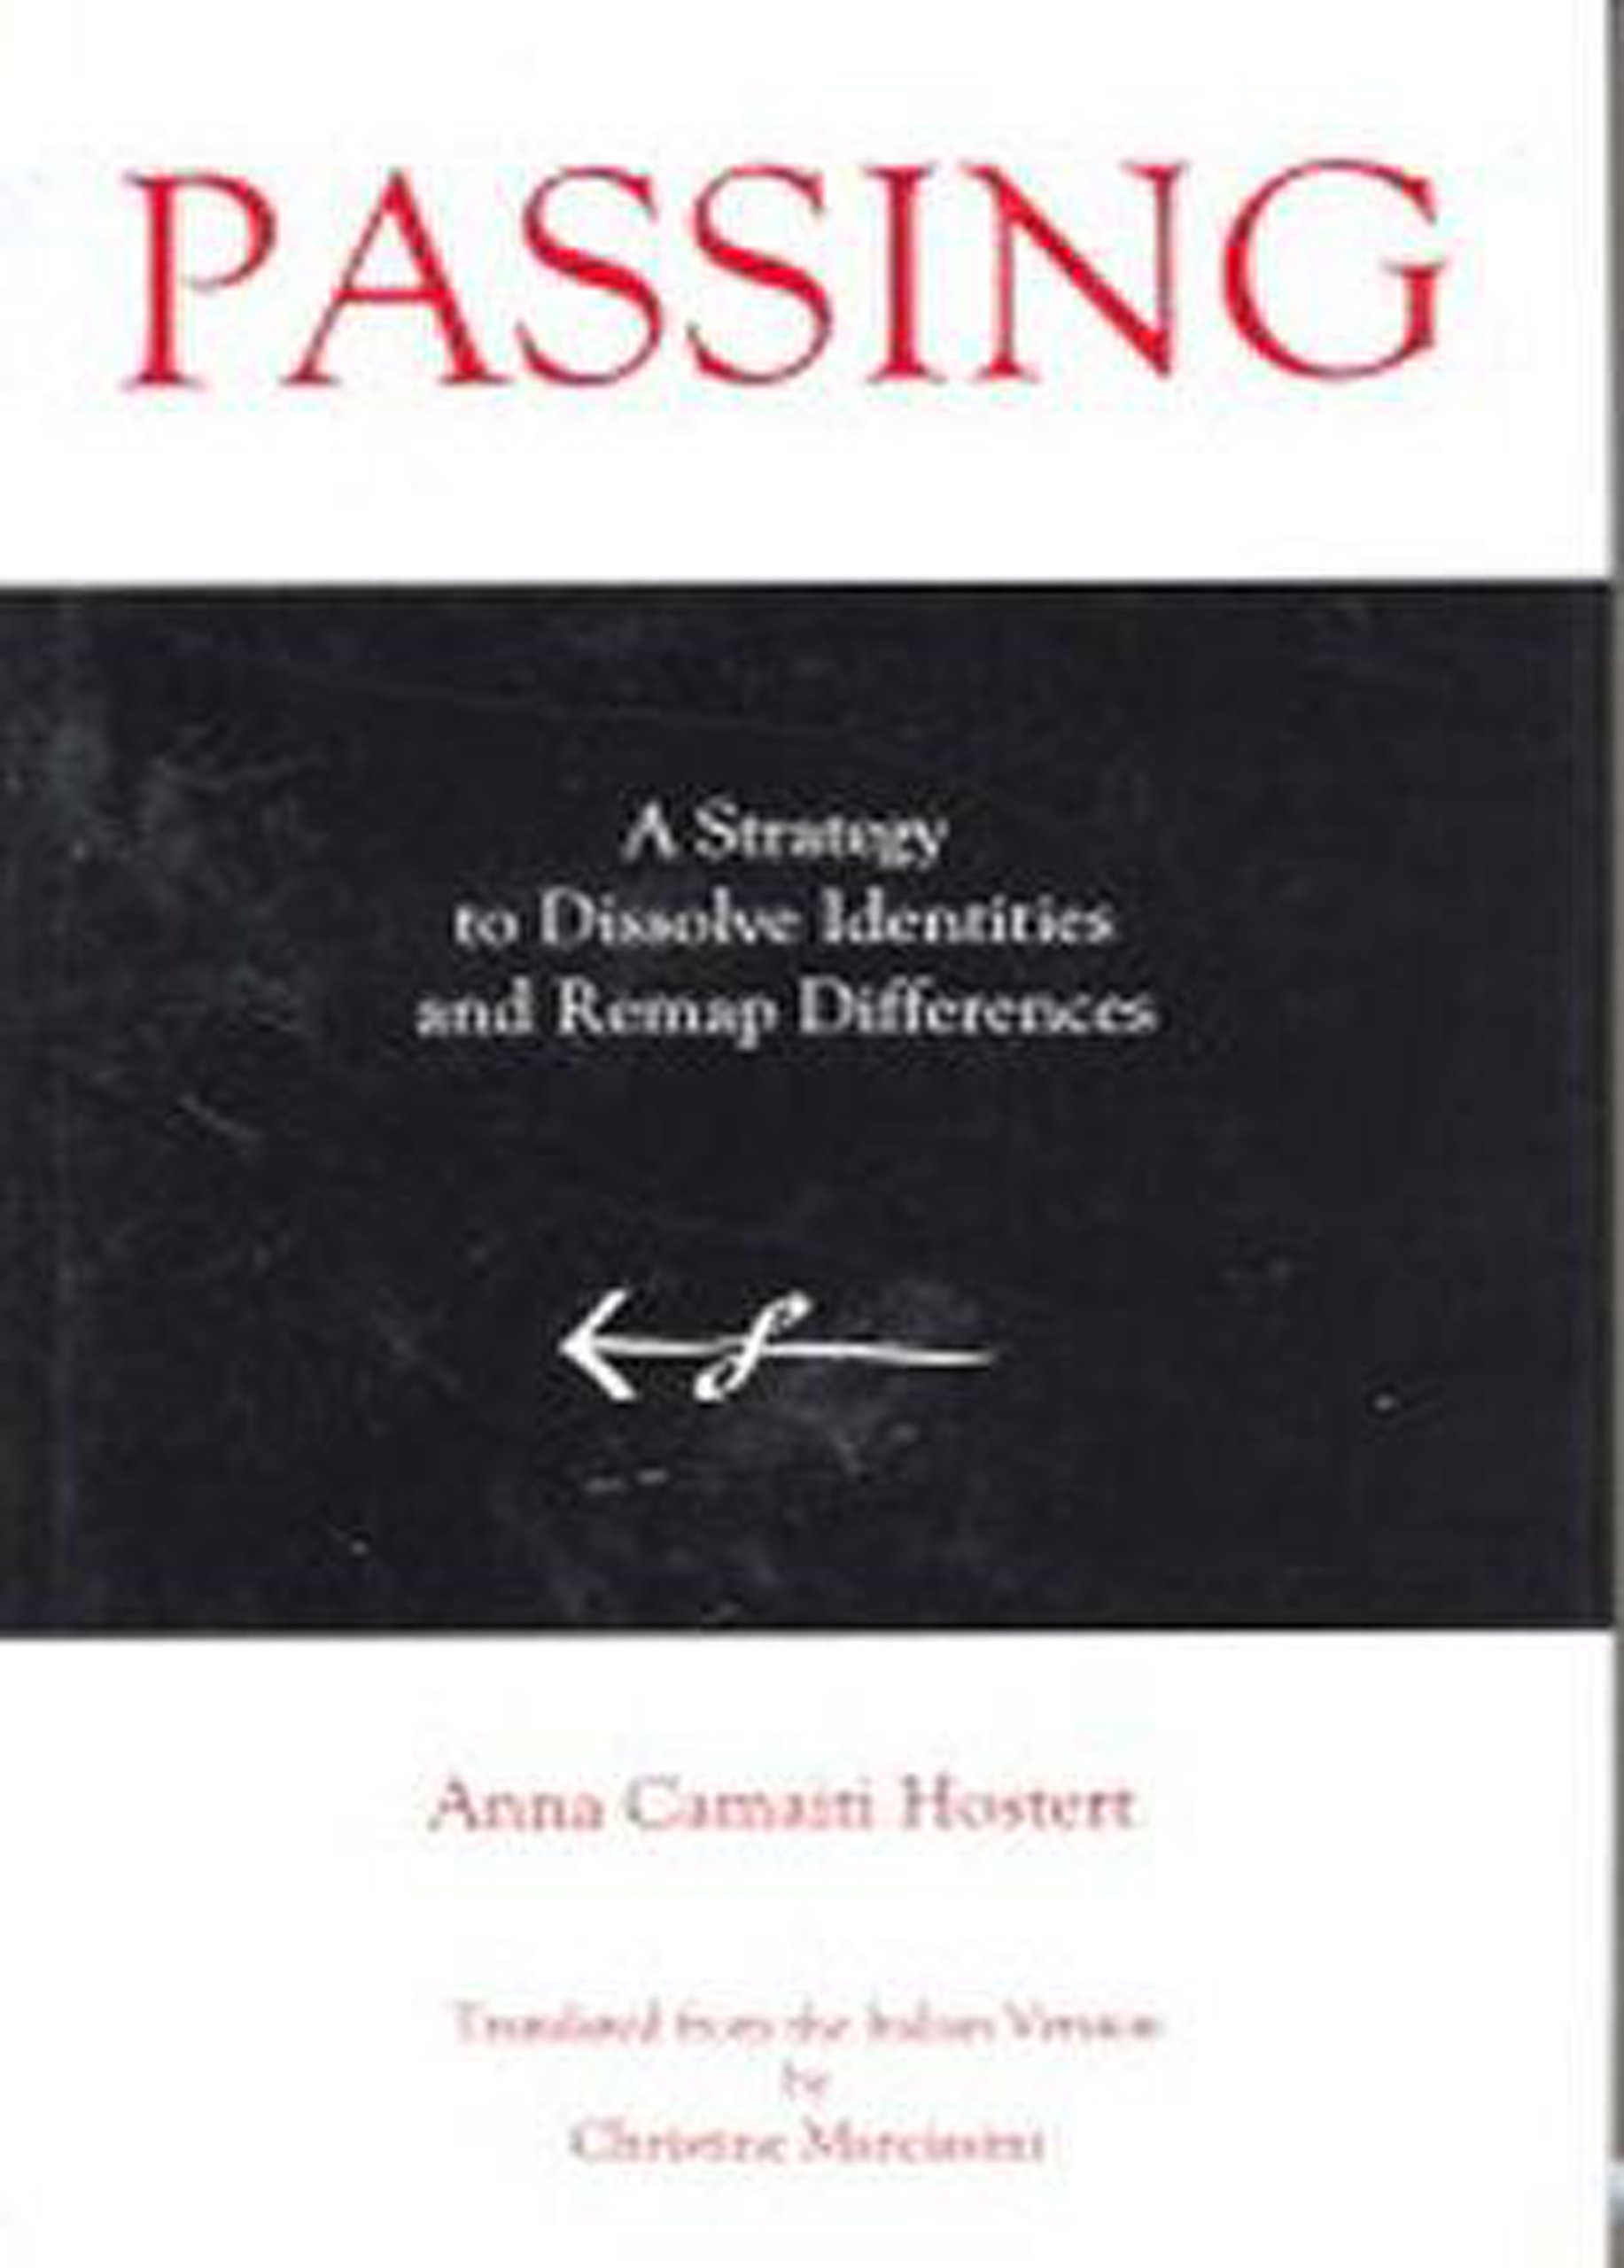 Read Online Passing: A Strategy to Dissolve Identities and Revamp Differences PDF